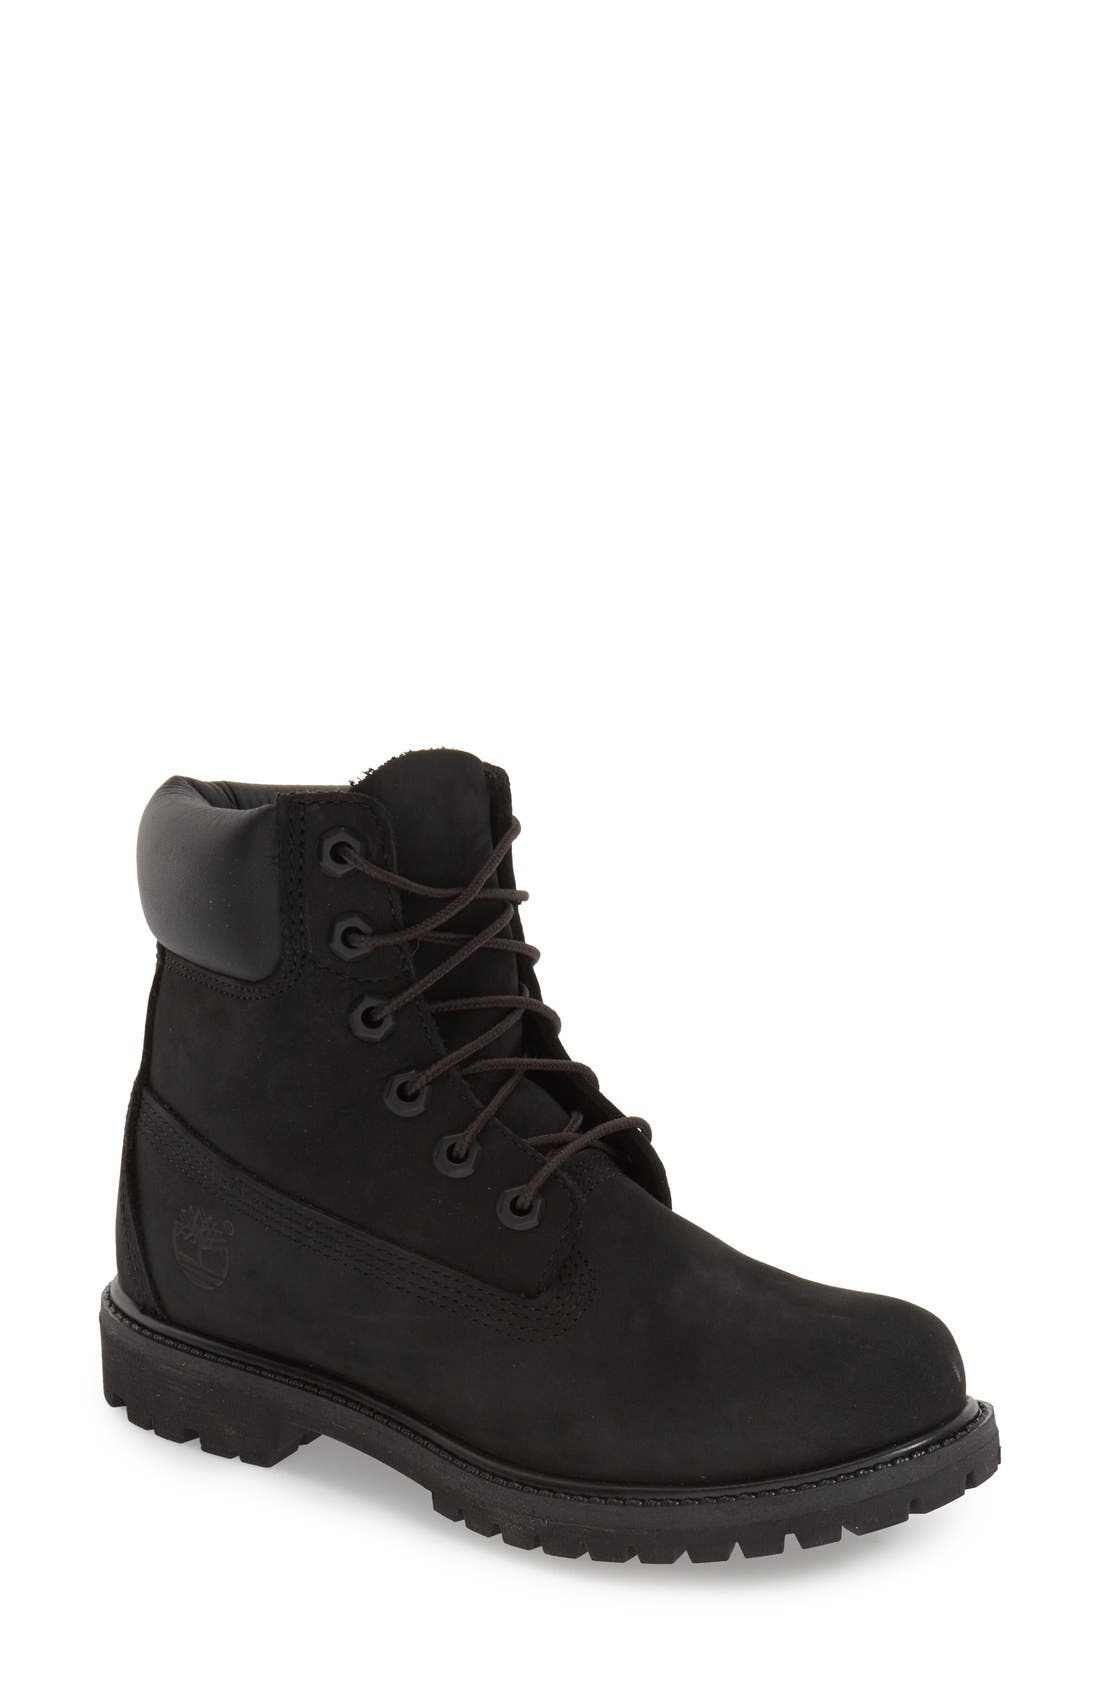 TIMBERLAND 6 Inch Premium Waterproof Boot, Main, color, BLACK NUBUCK LEATHER